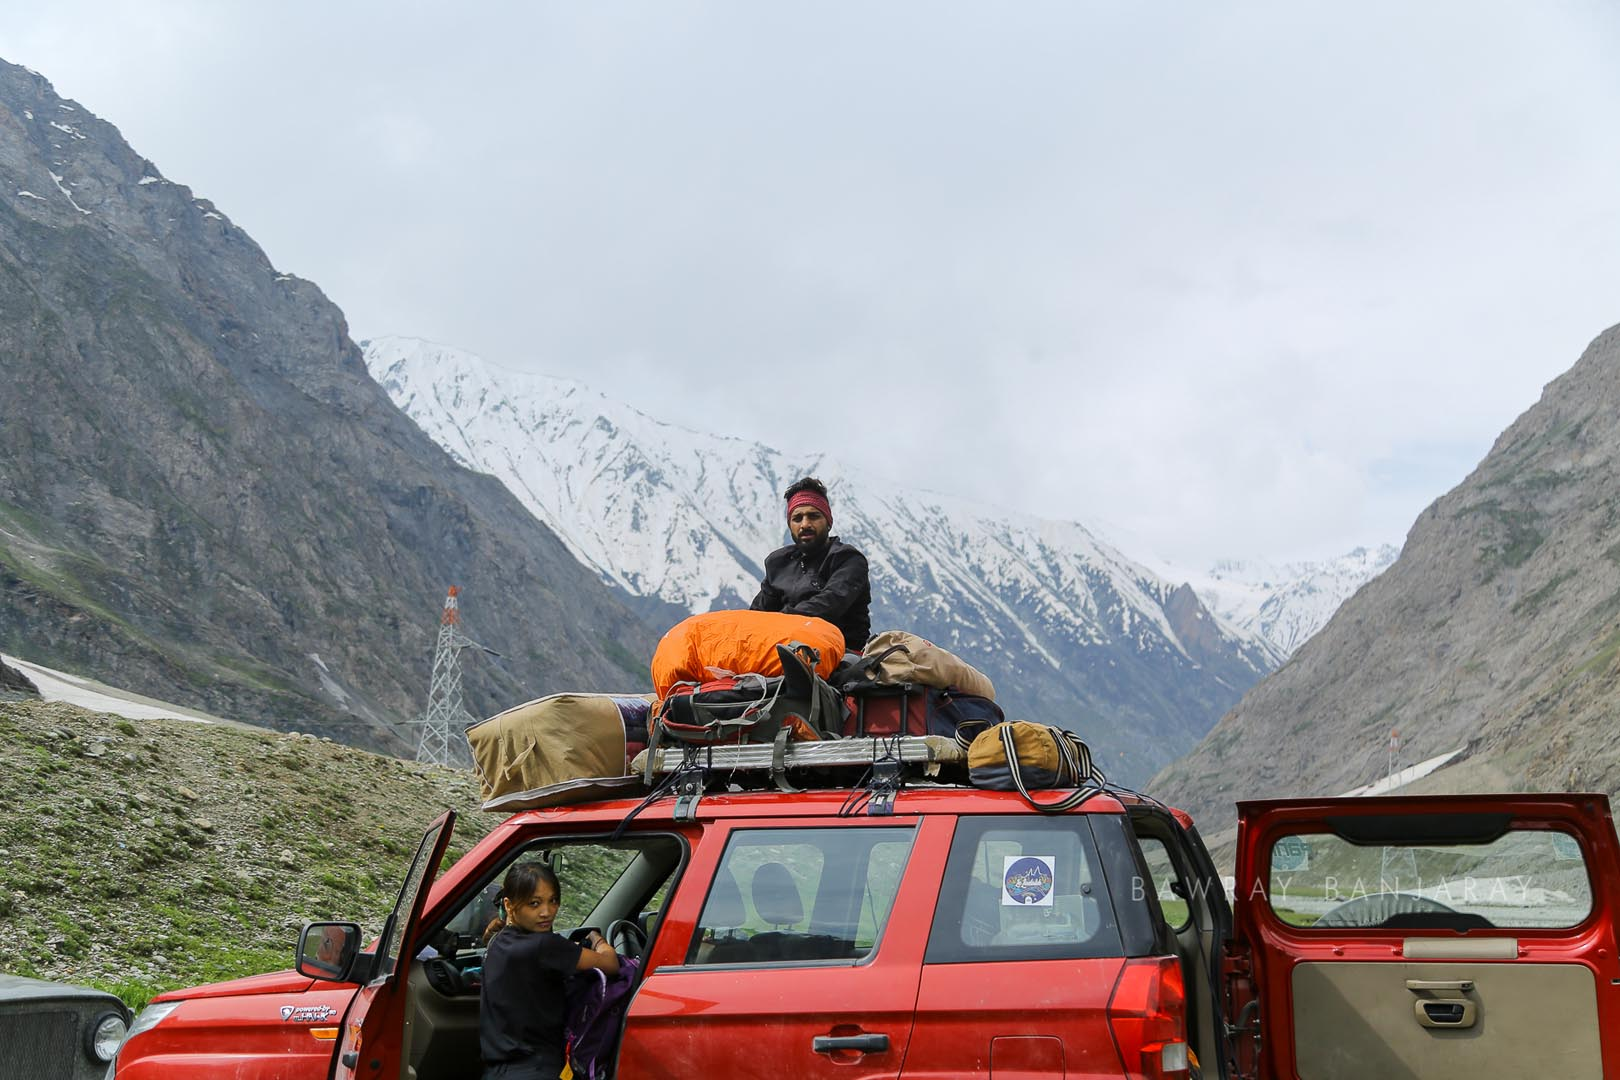 Narry on Le Ladakh Expedition